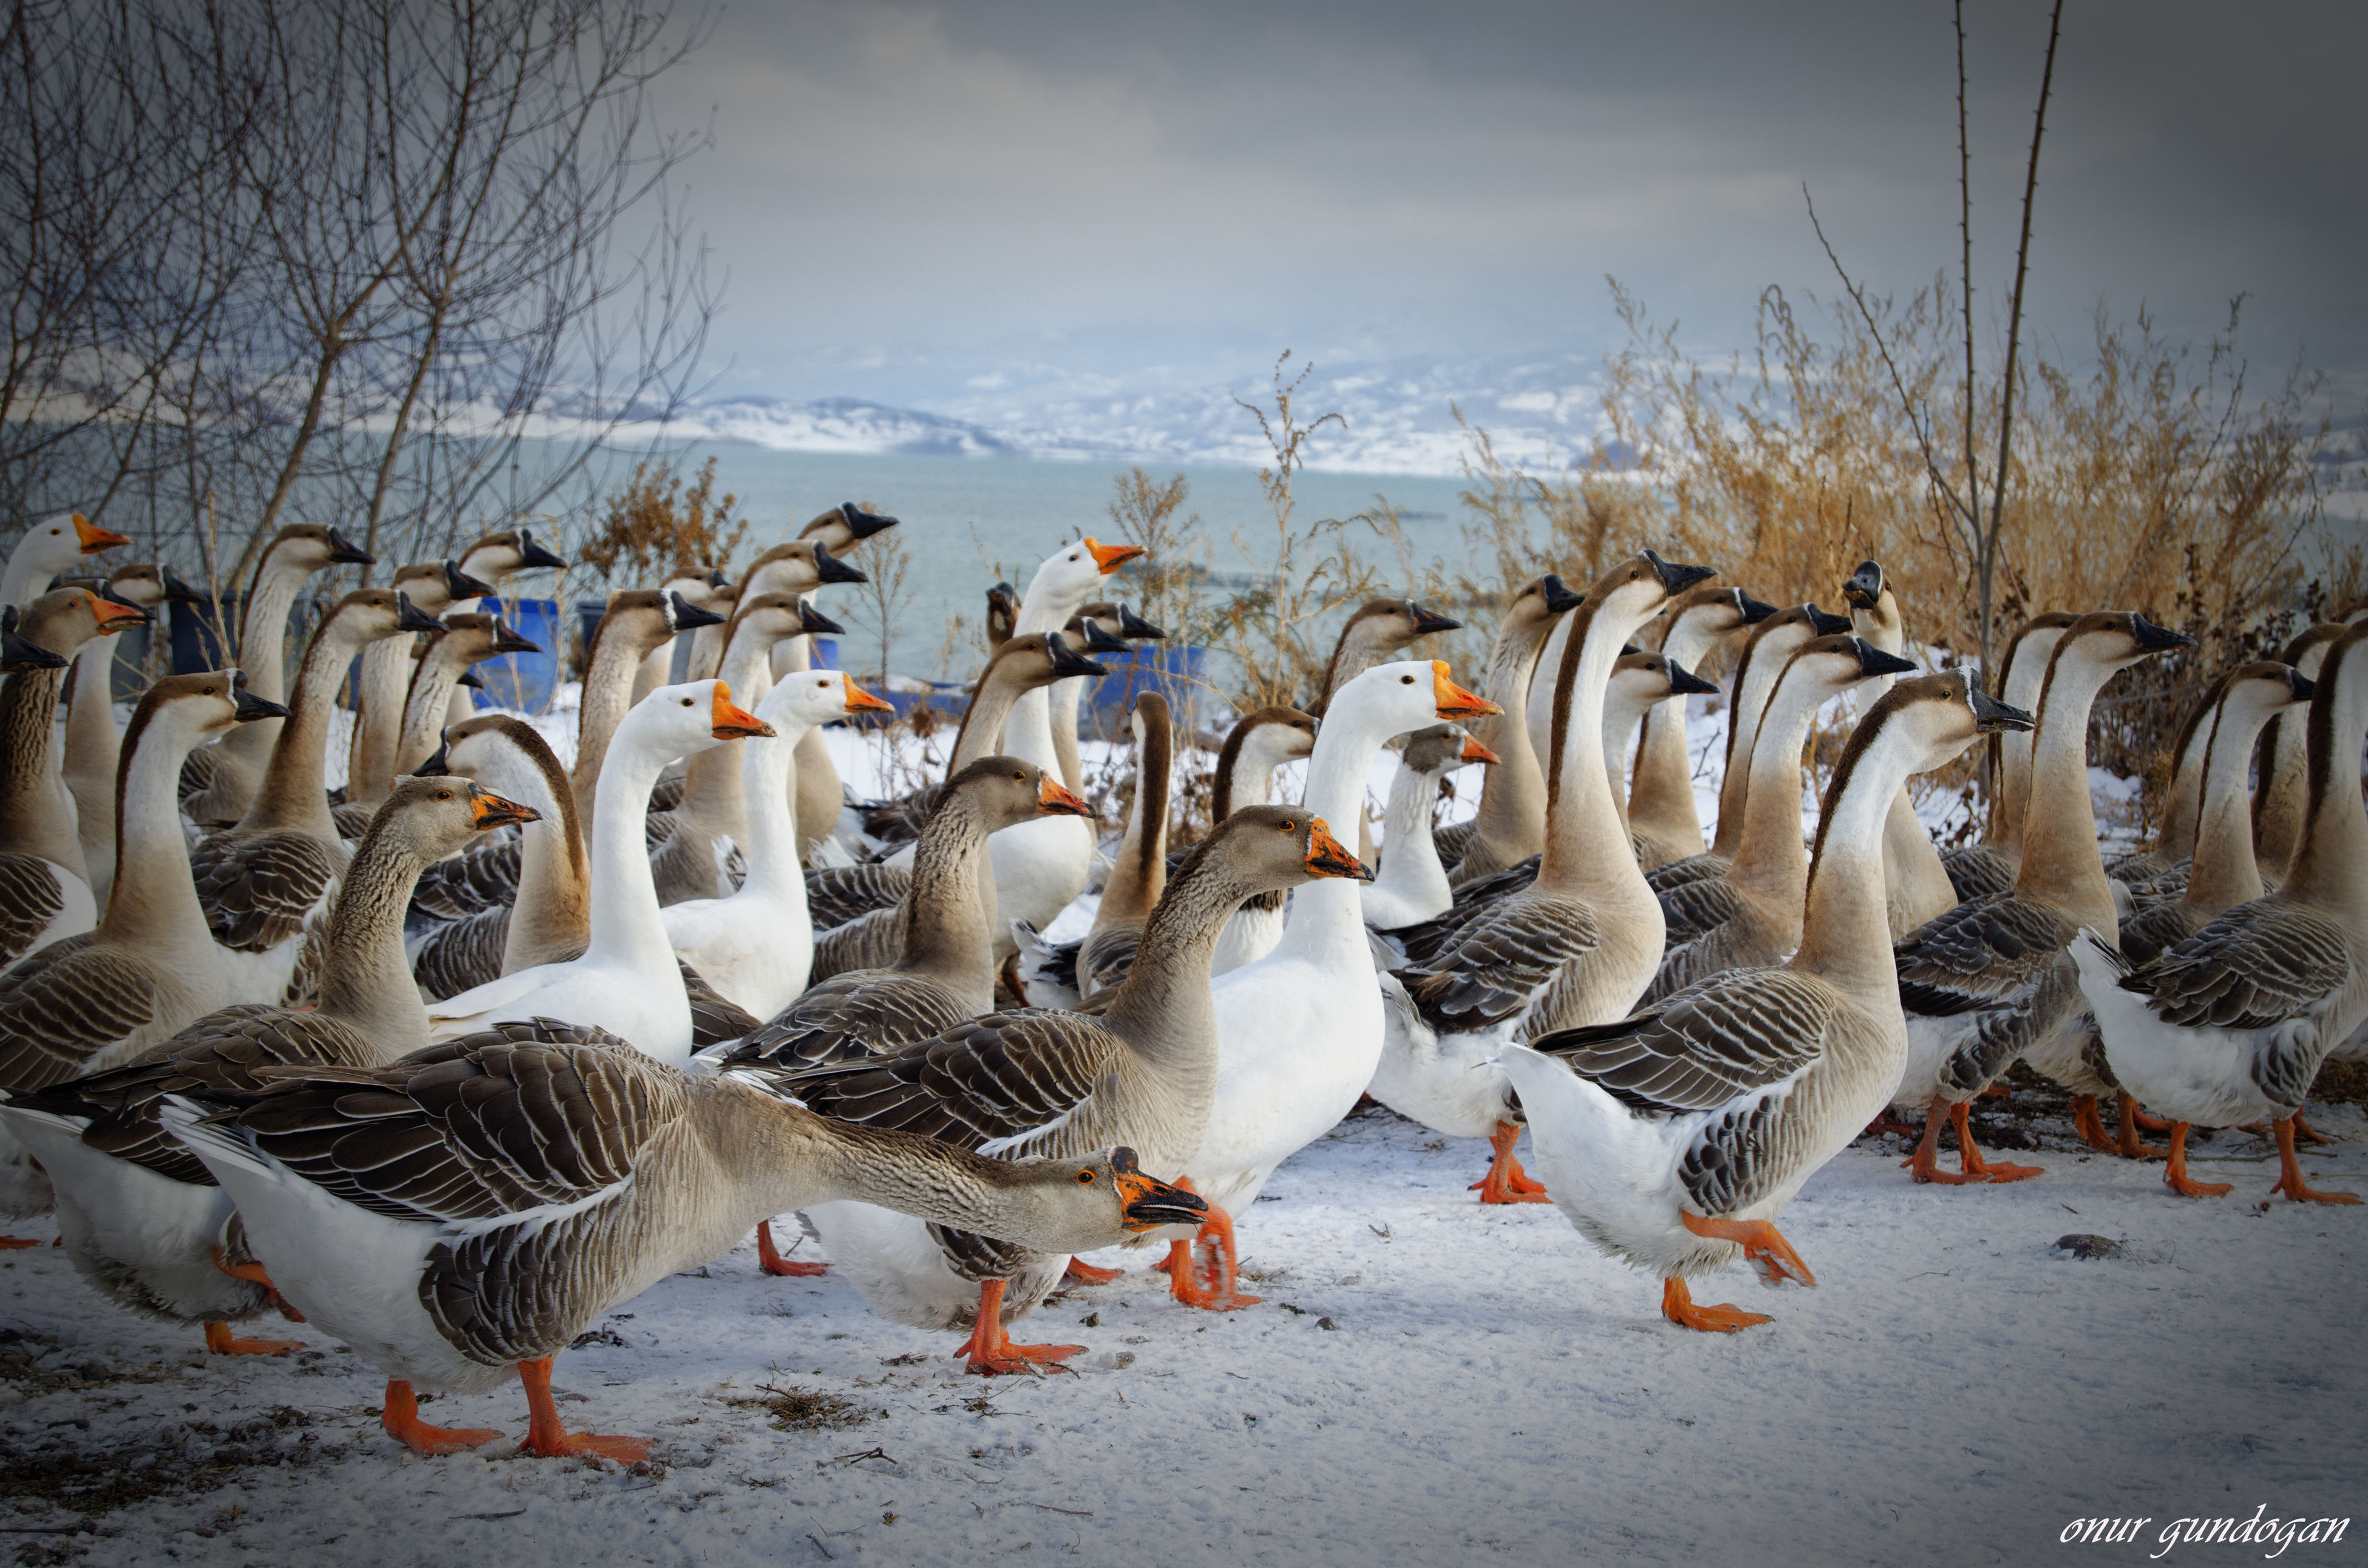 bird, large group of animals, animal themes, animals in the wild, animal wildlife, nature, day, outdoors, winter, geese, no people, sky, cold temperature, flock of birds, greylag goose, water